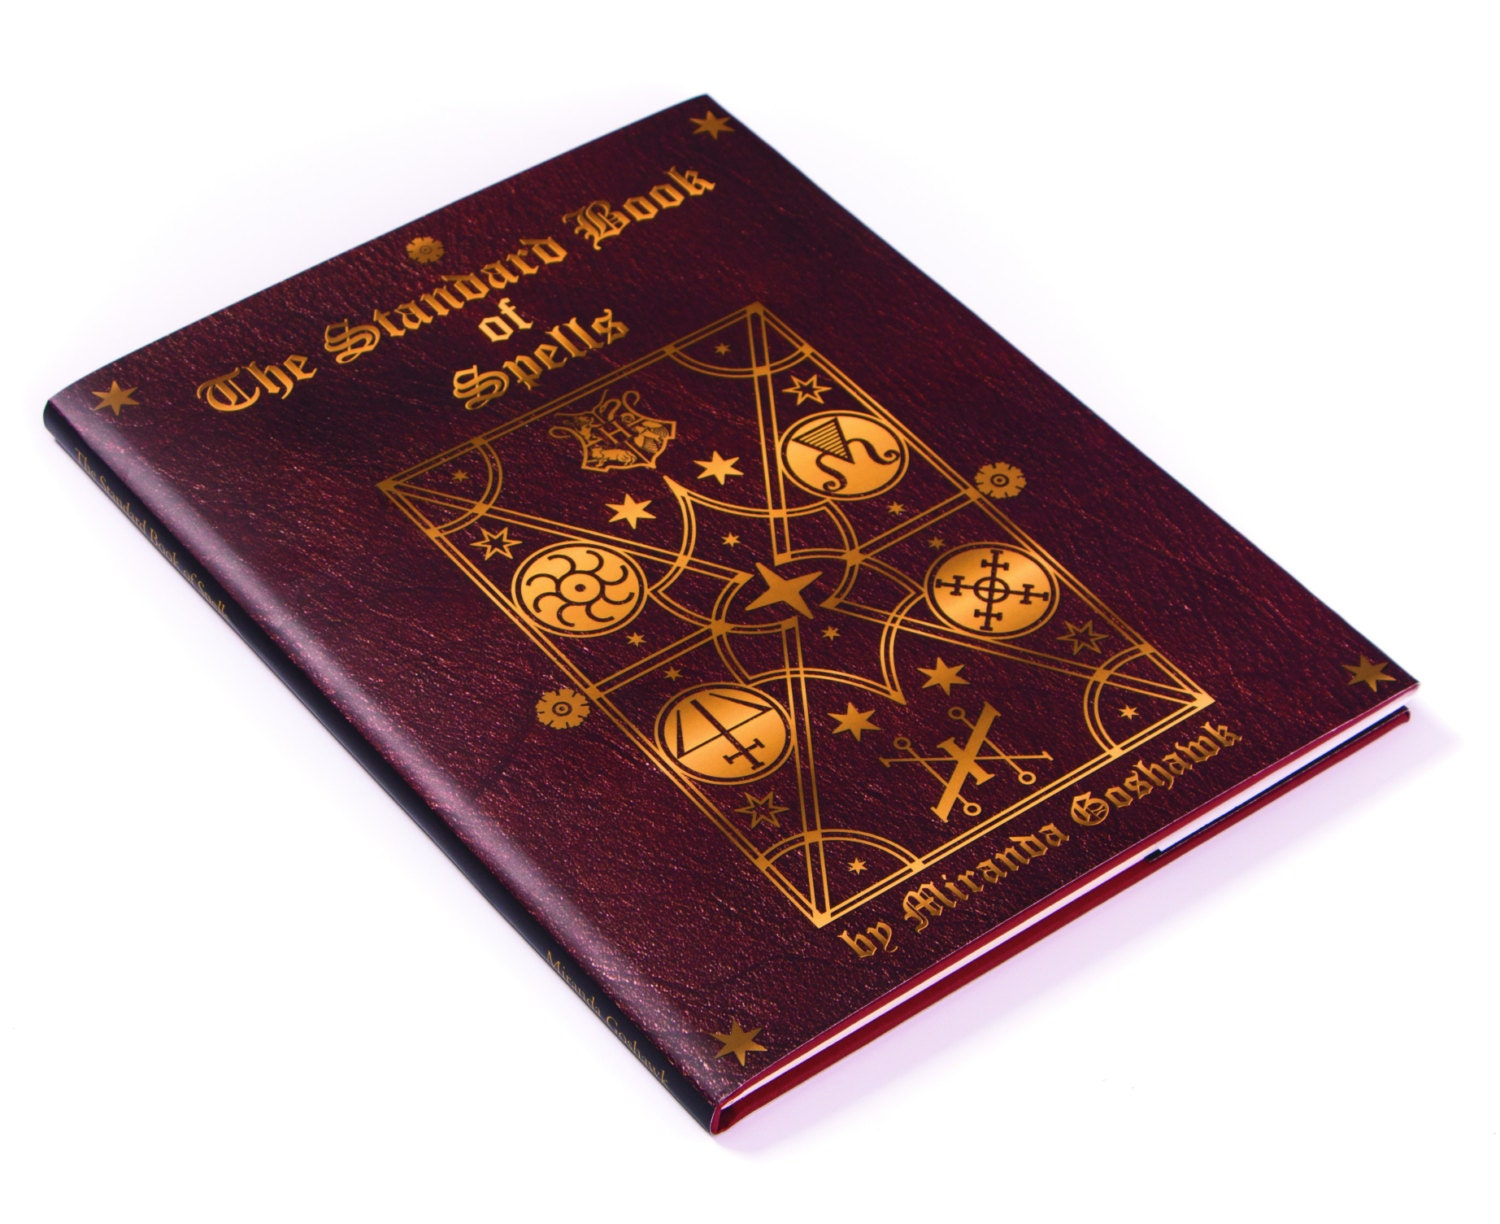 Harry Potter Zauberbuch Standard Book of Spells von Miranda